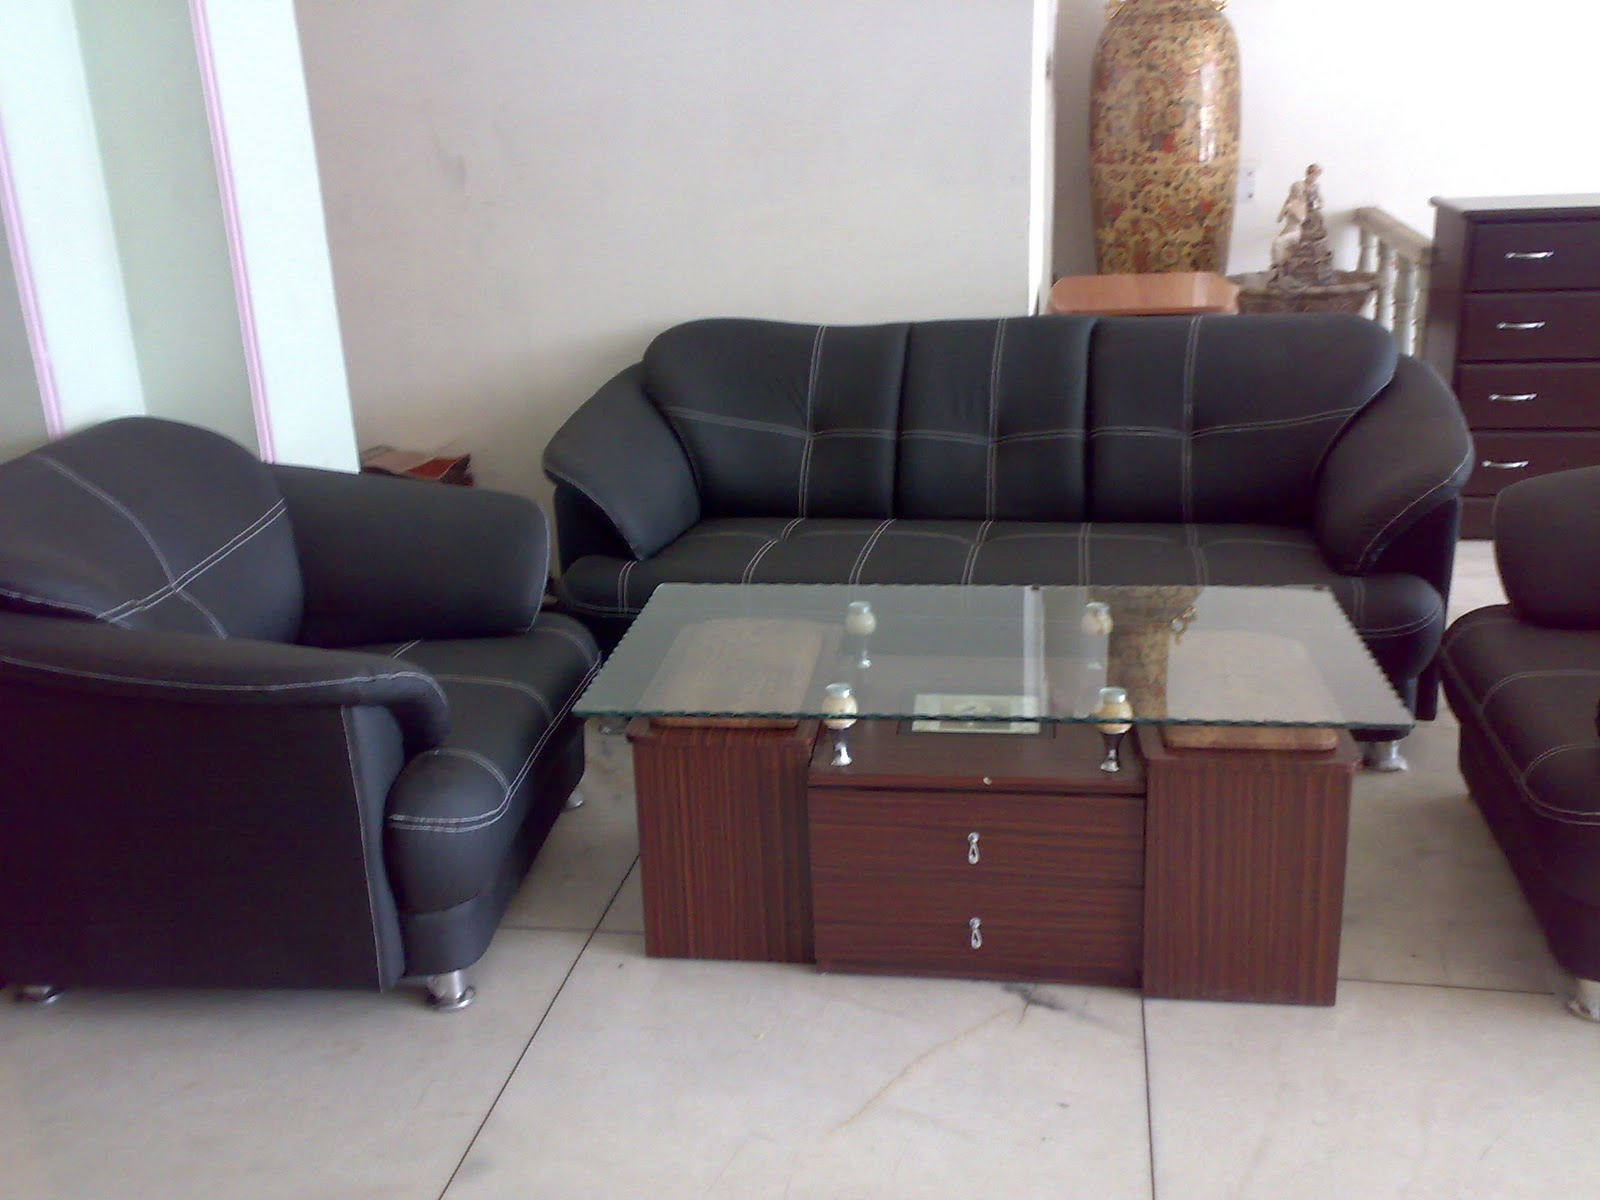 L Shape Sofa Set Kirti Nagar Latest Furniture Sofa Designs Buy All Kind Of Wooden